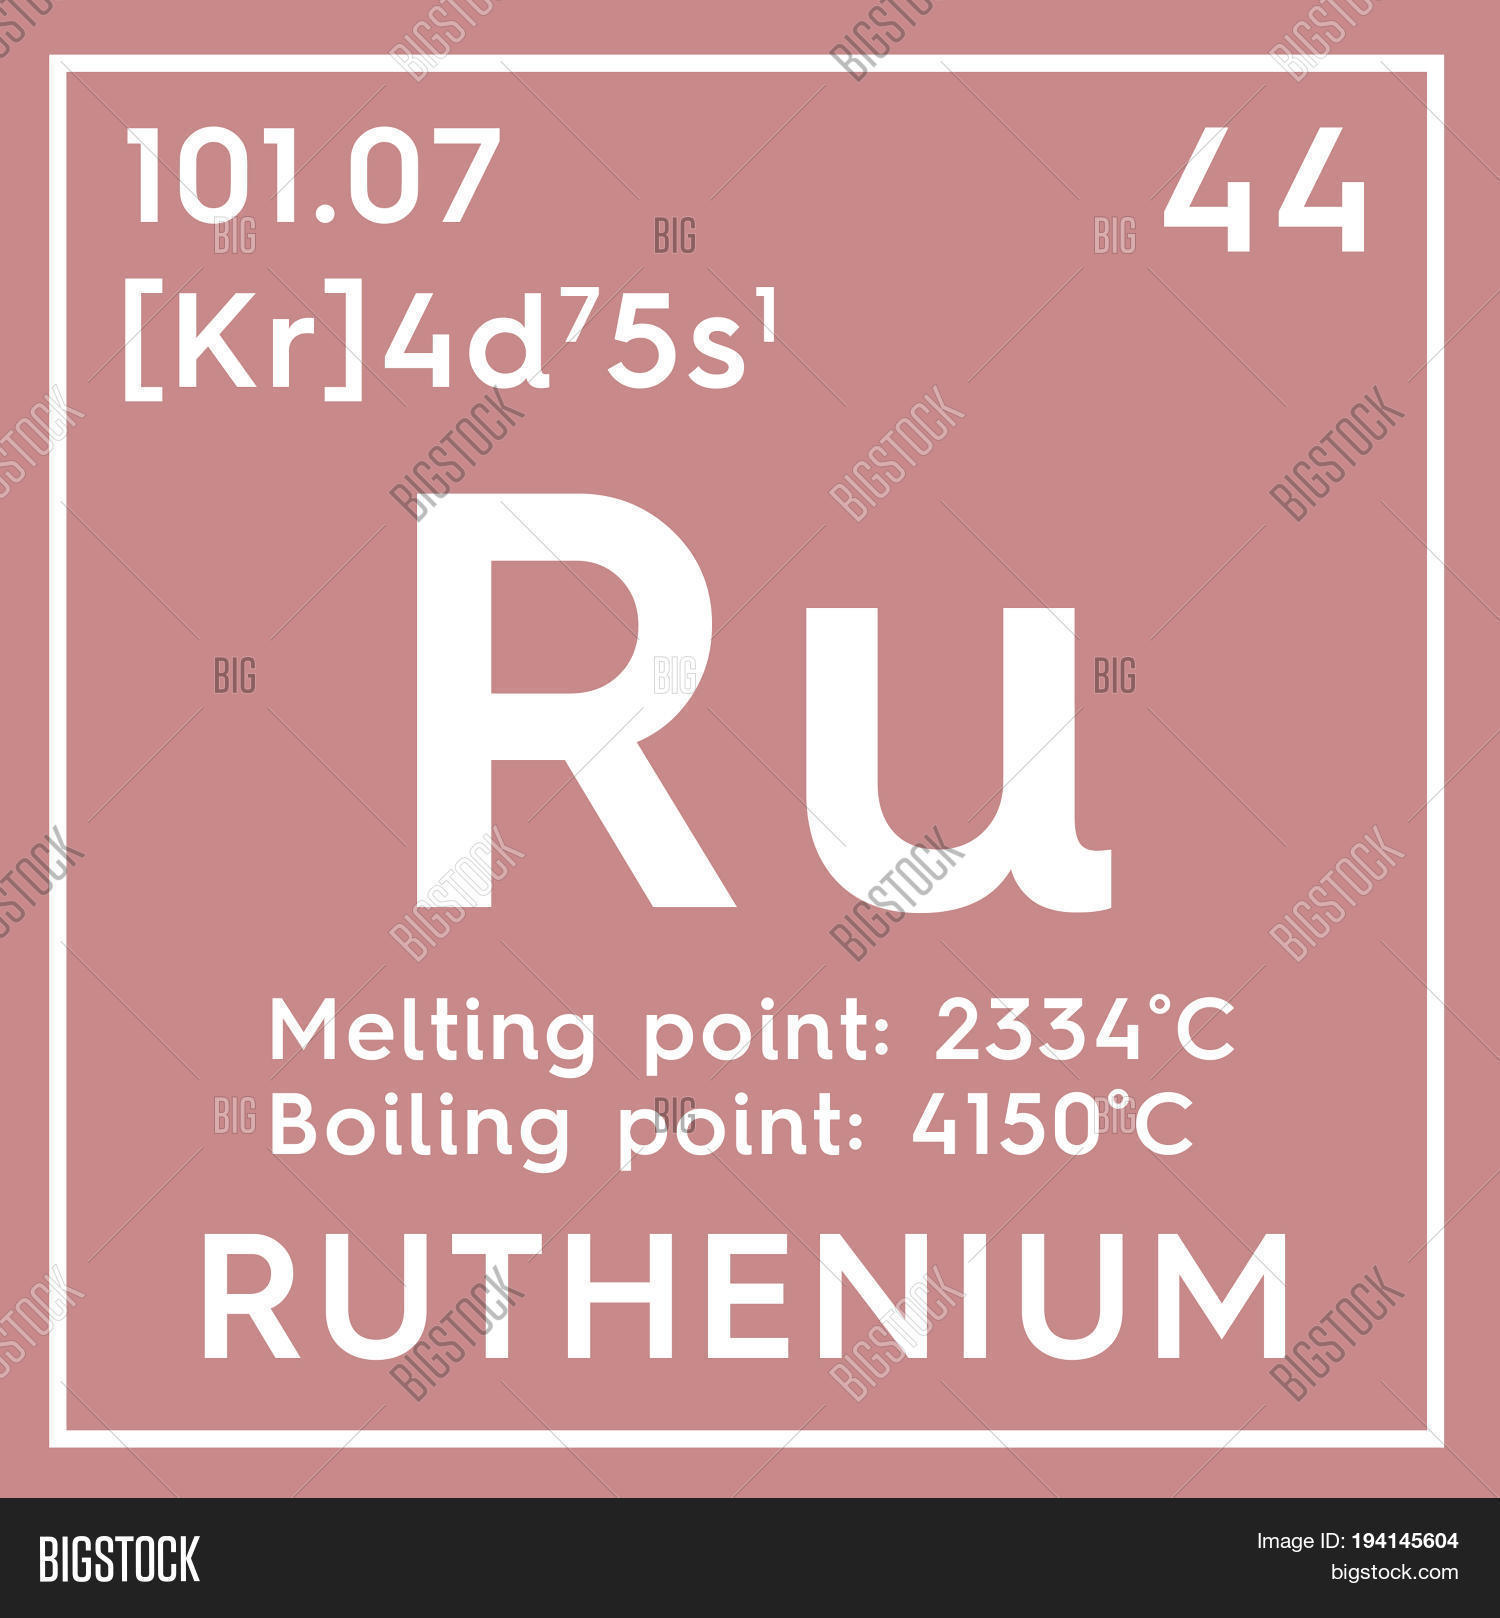 Ruthenium transition metals chemical element of mendeleevs ruthenium transition metals chemical element of mendeleevs periodic table ruthenium in square cube gamestrikefo Choice Image